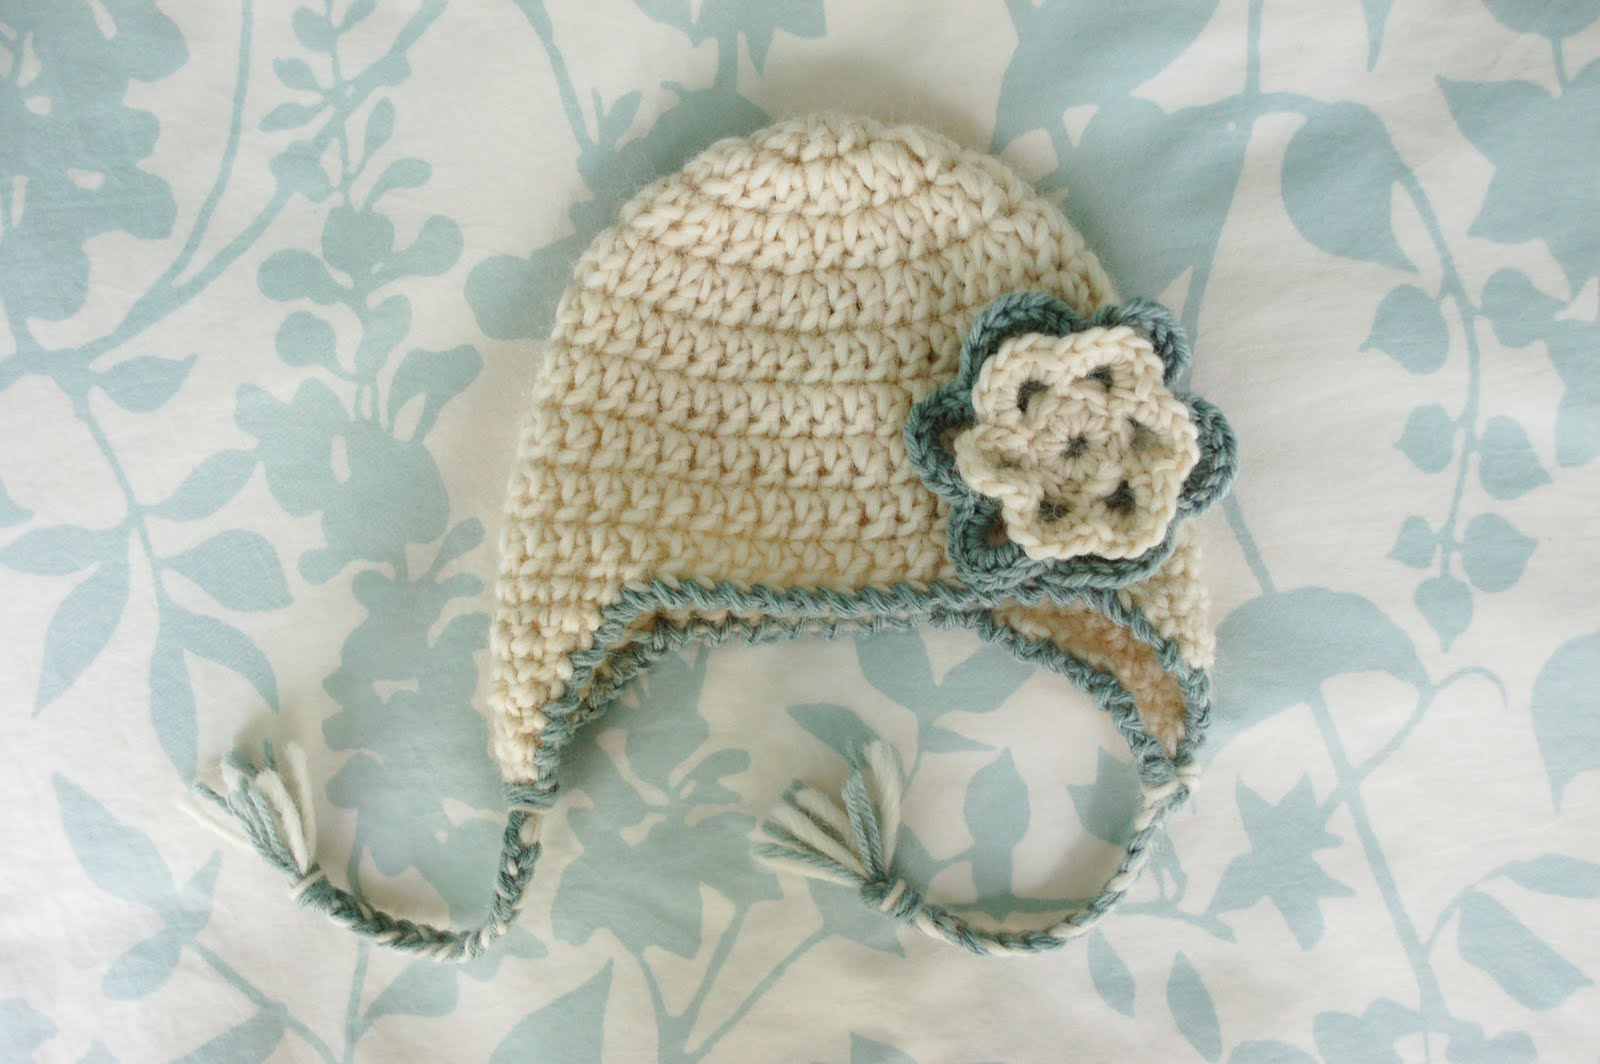 Crochet Patterns Newborn Hats : Alli Crafts: Free Pattern: Baby Earflap Hat - Newborn